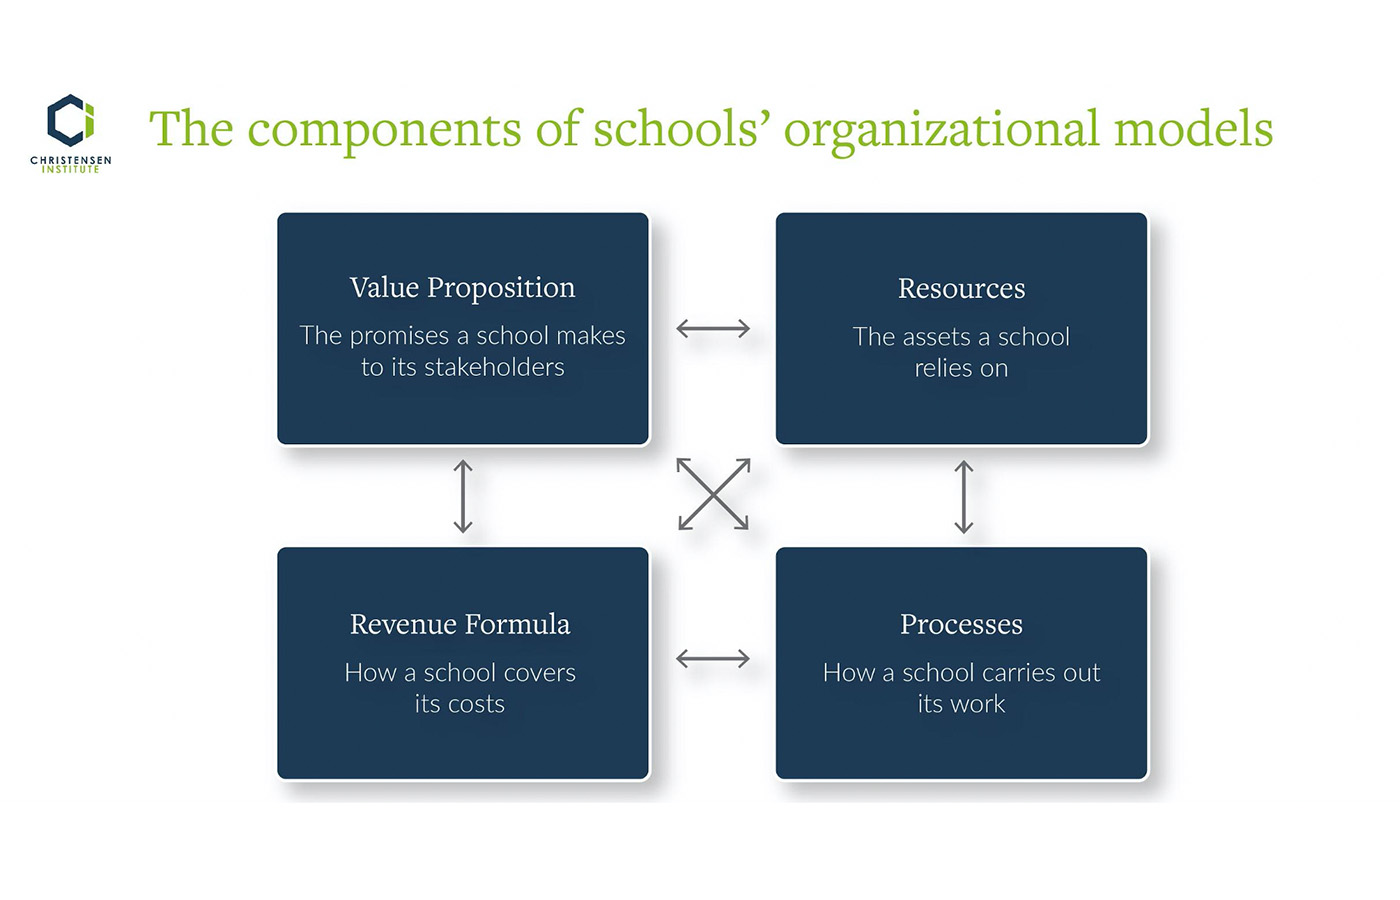 components of schools' organizational models